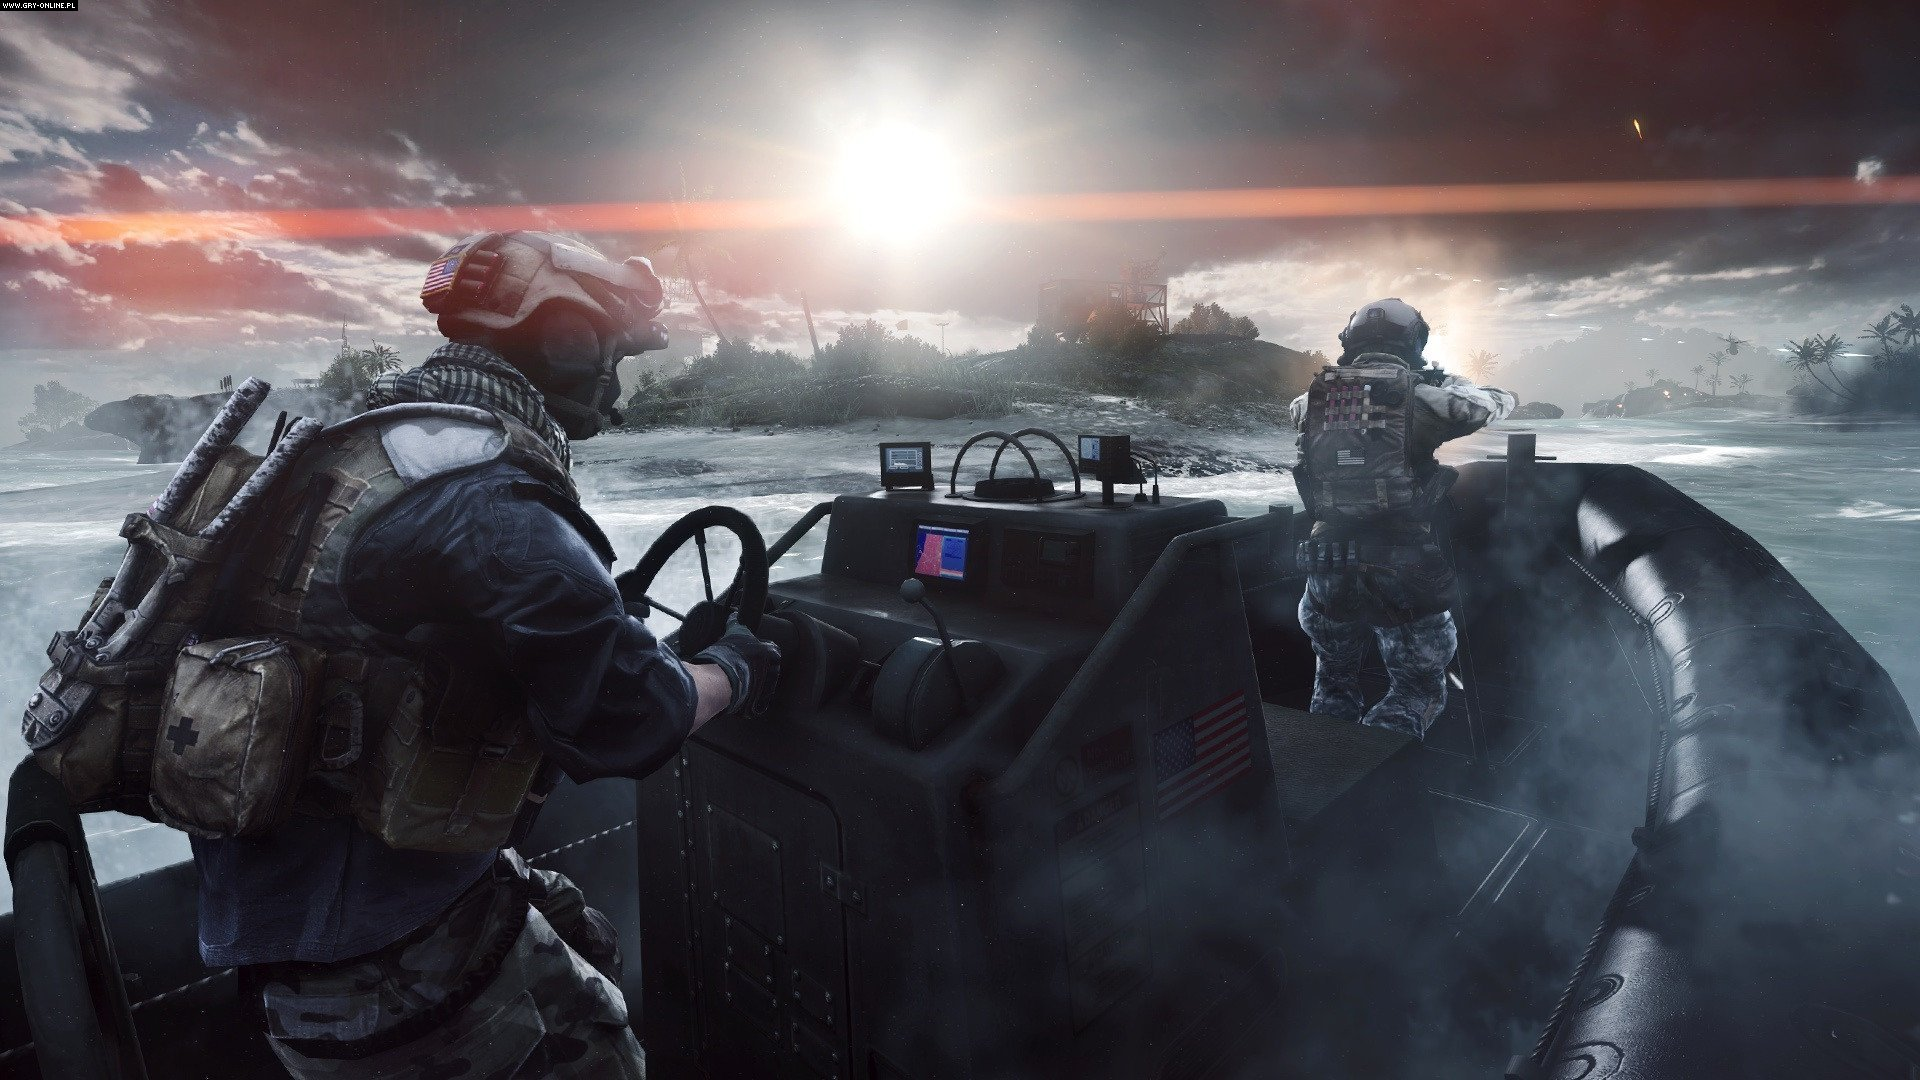 Battlefield 4 PC, PS4, XONE Games Image 24/48, EA DICE / Digital Illusions CE, Electronic Arts Inc.